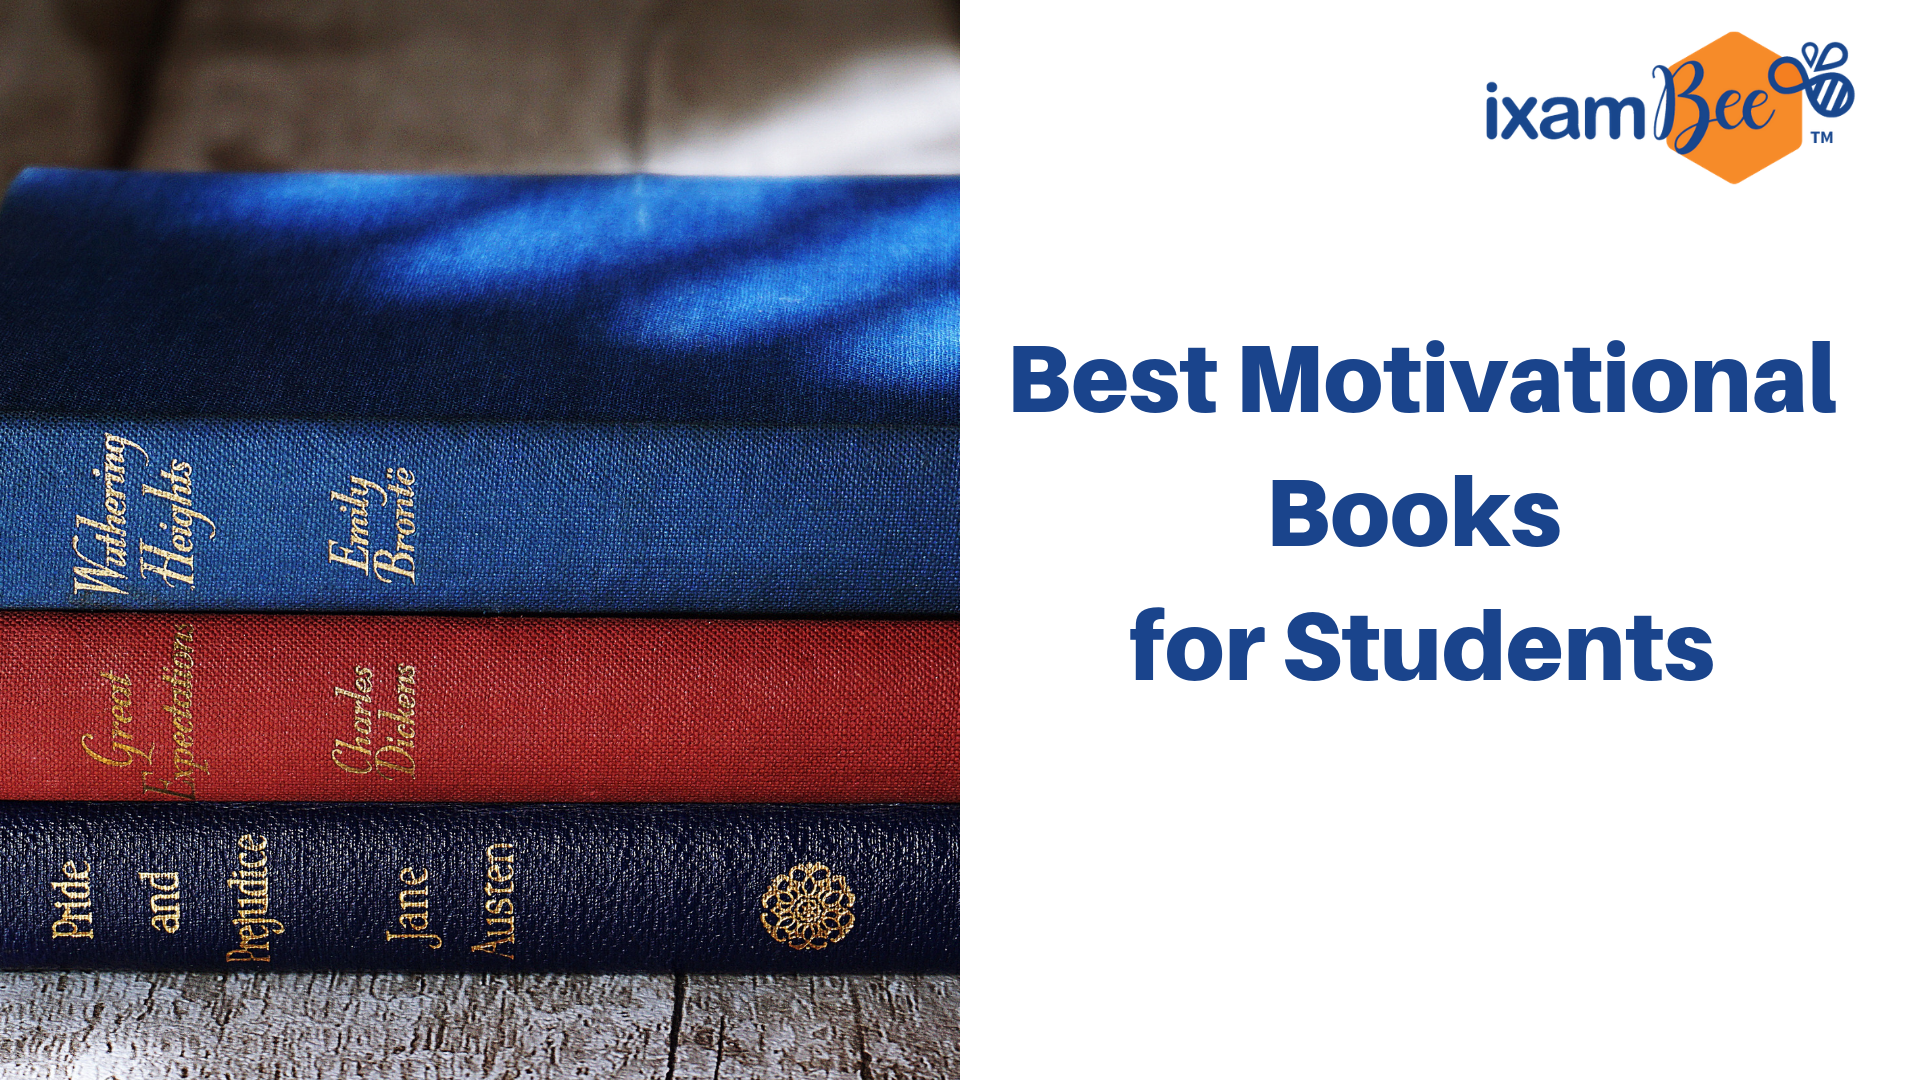 Best Motivational Books for Students: Check Out Here!